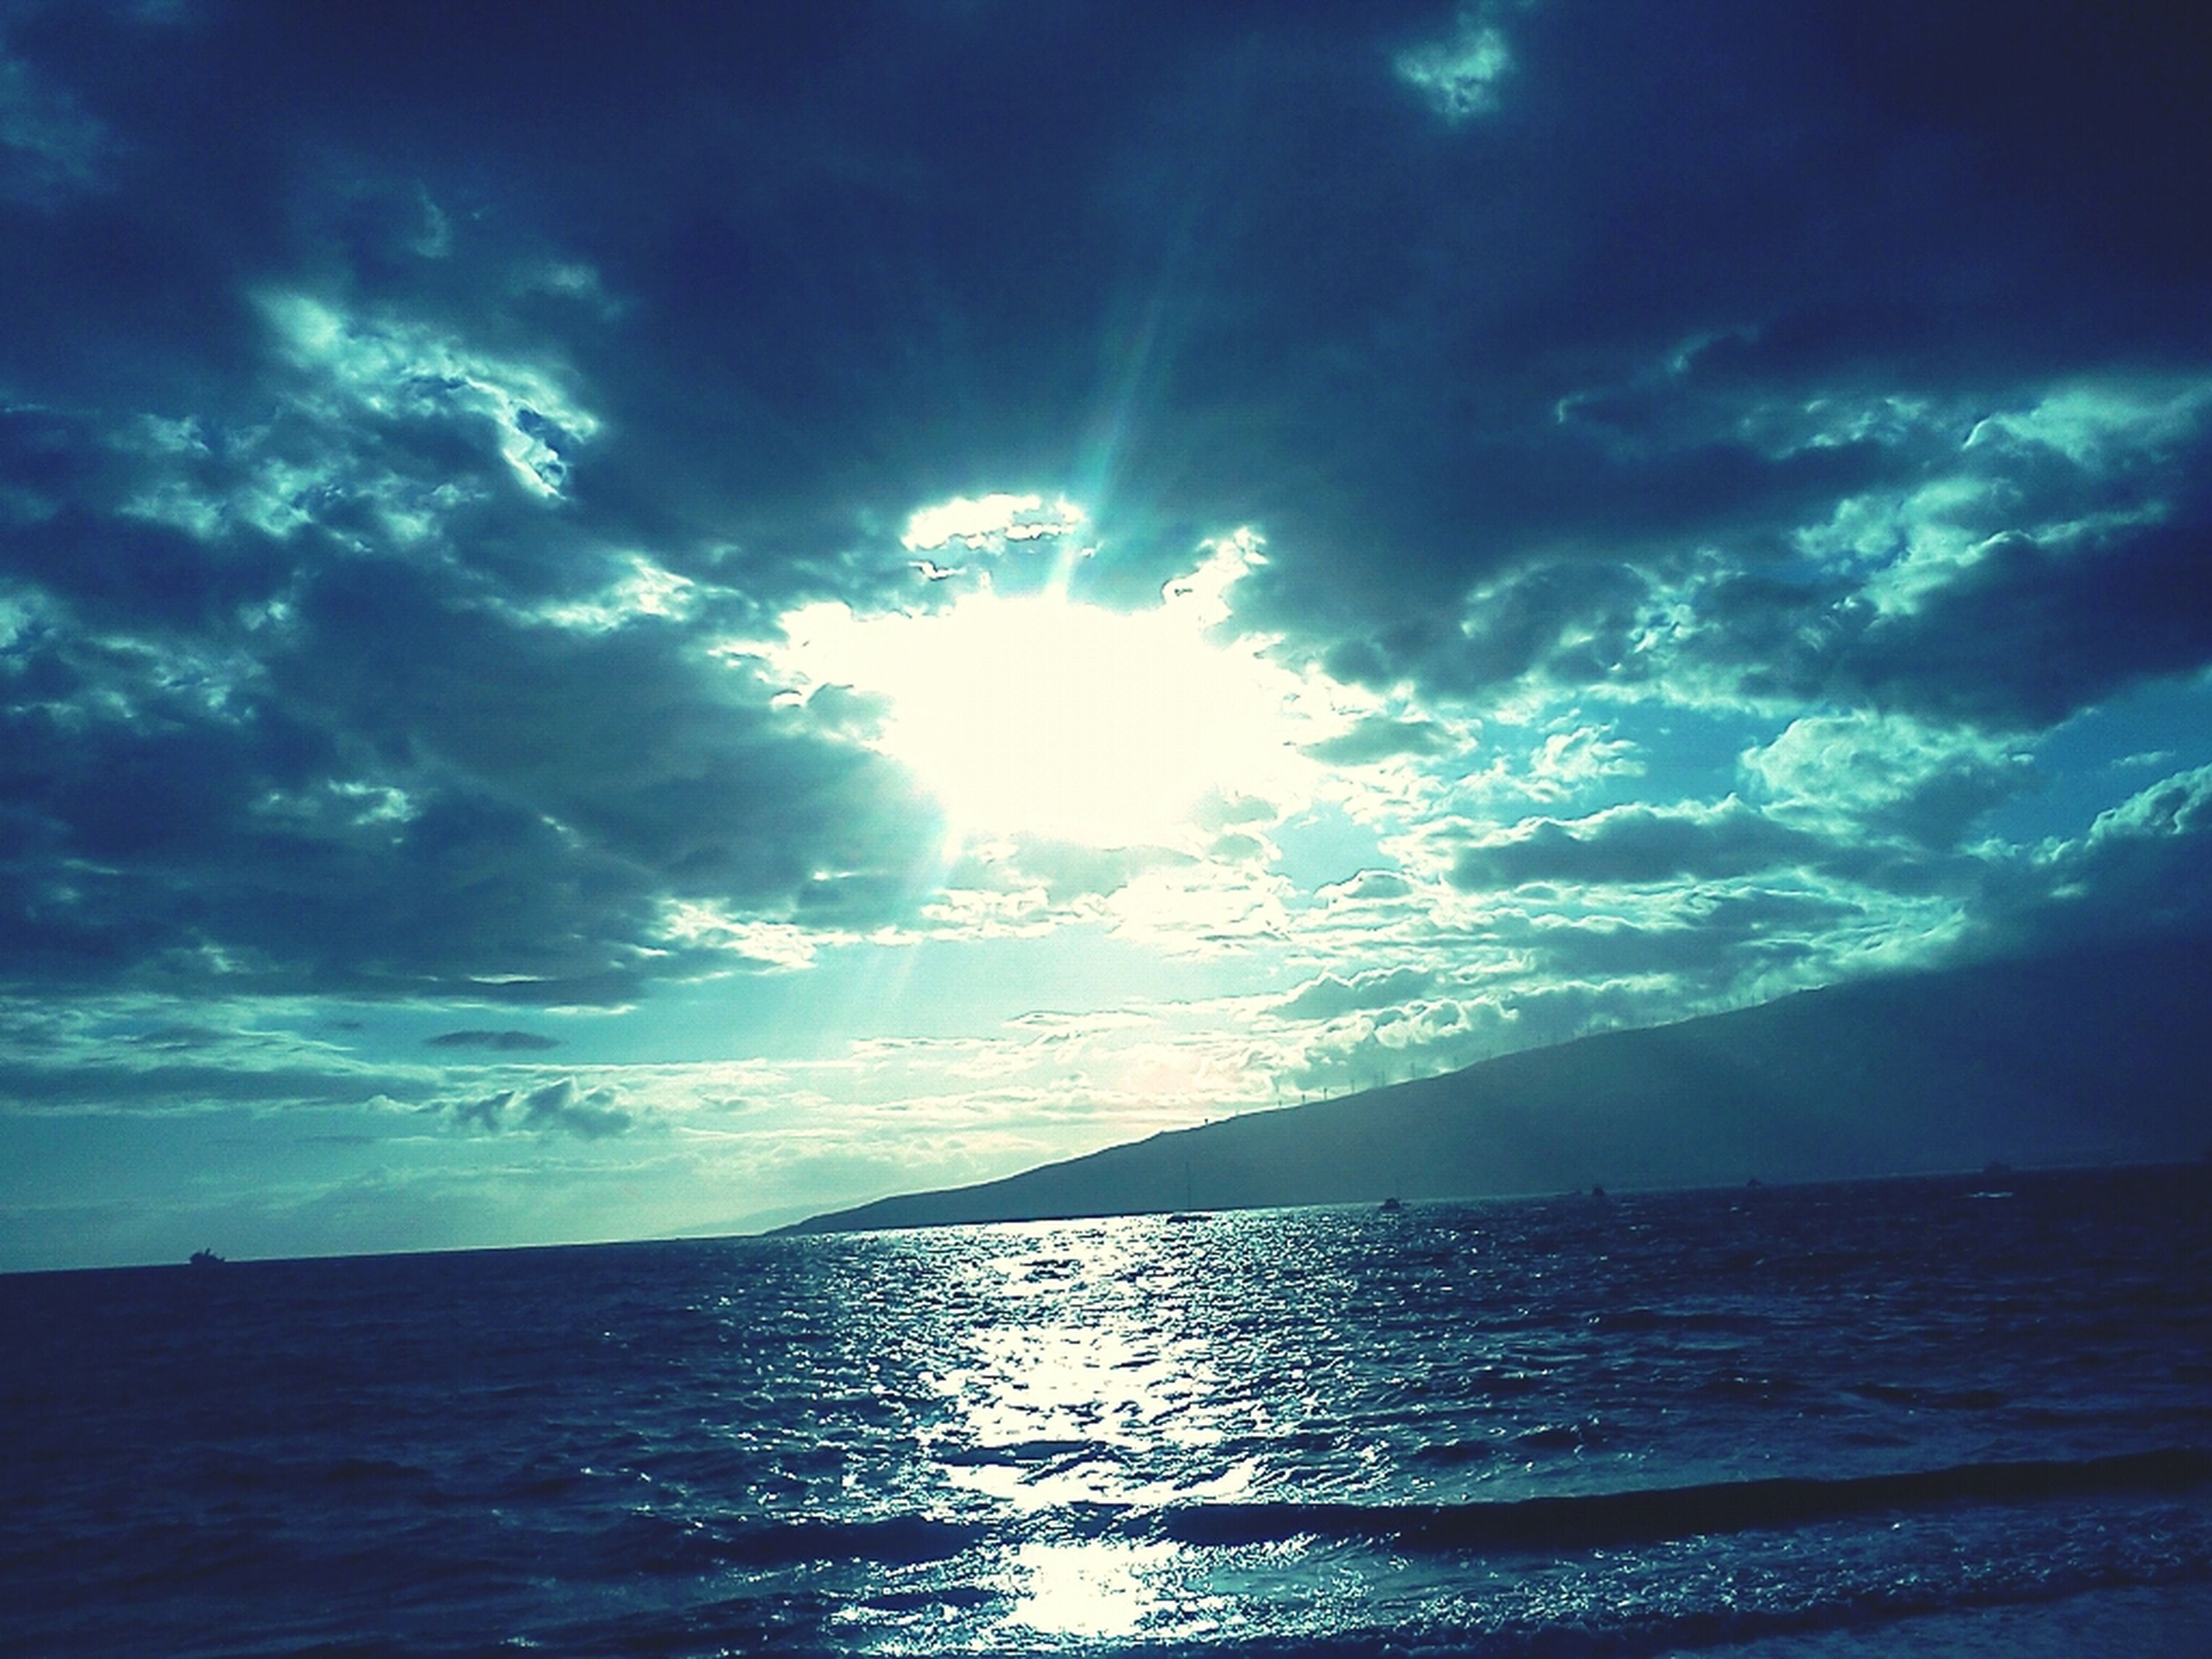 sea, sky, water, scenics, tranquil scene, tranquility, beauty in nature, cloud - sky, sun, horizon over water, sunbeam, nature, sunlight, idyllic, cloud, blue, waterfront, cloudy, reflection, outdoors